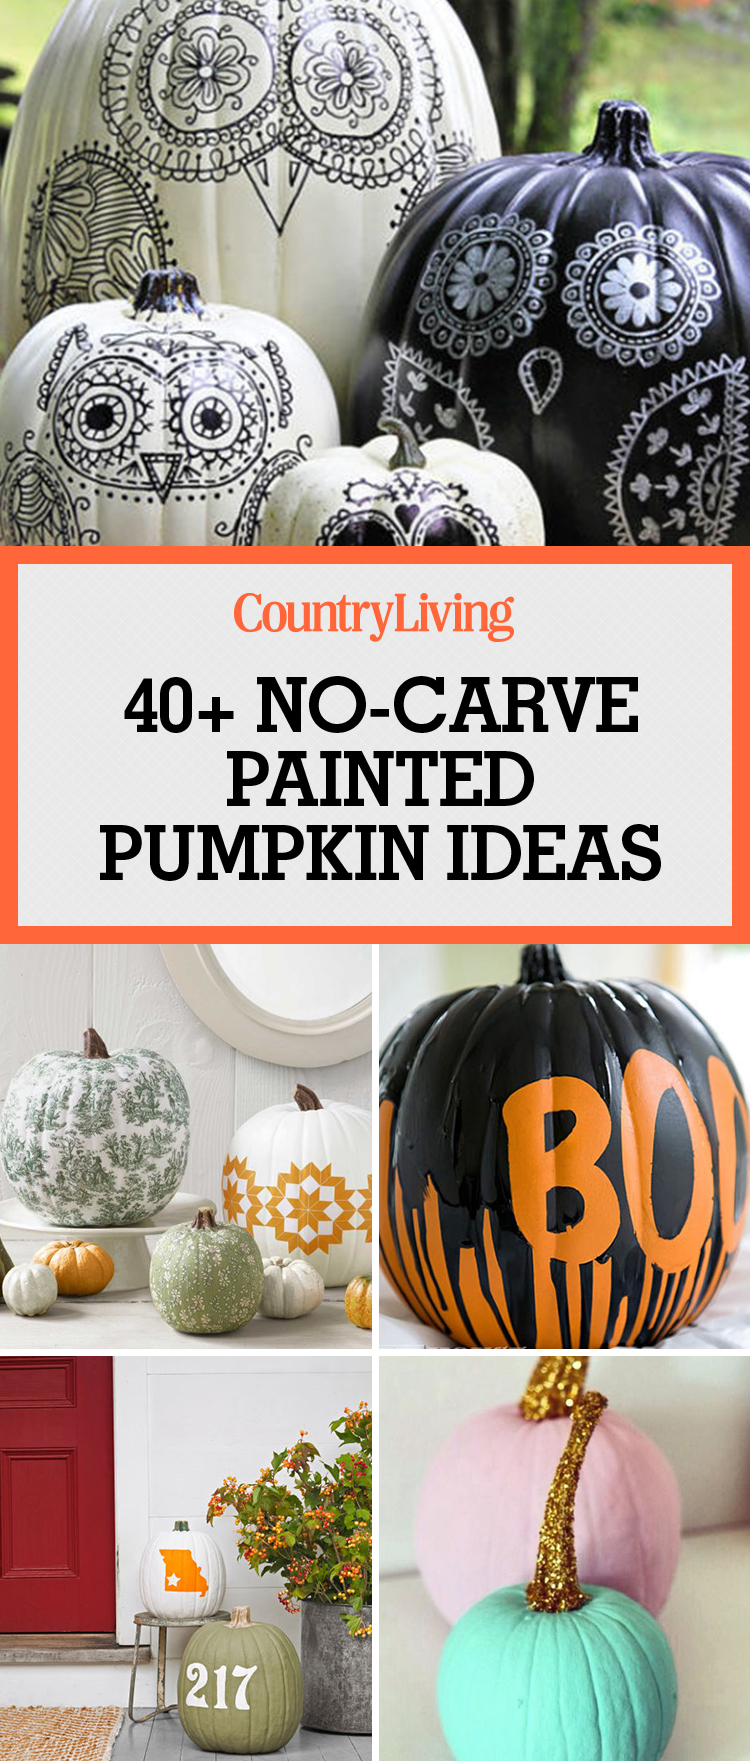 57 Easy Painted Pumpkins Ideas - No Carve Halloween Pumpkin ...